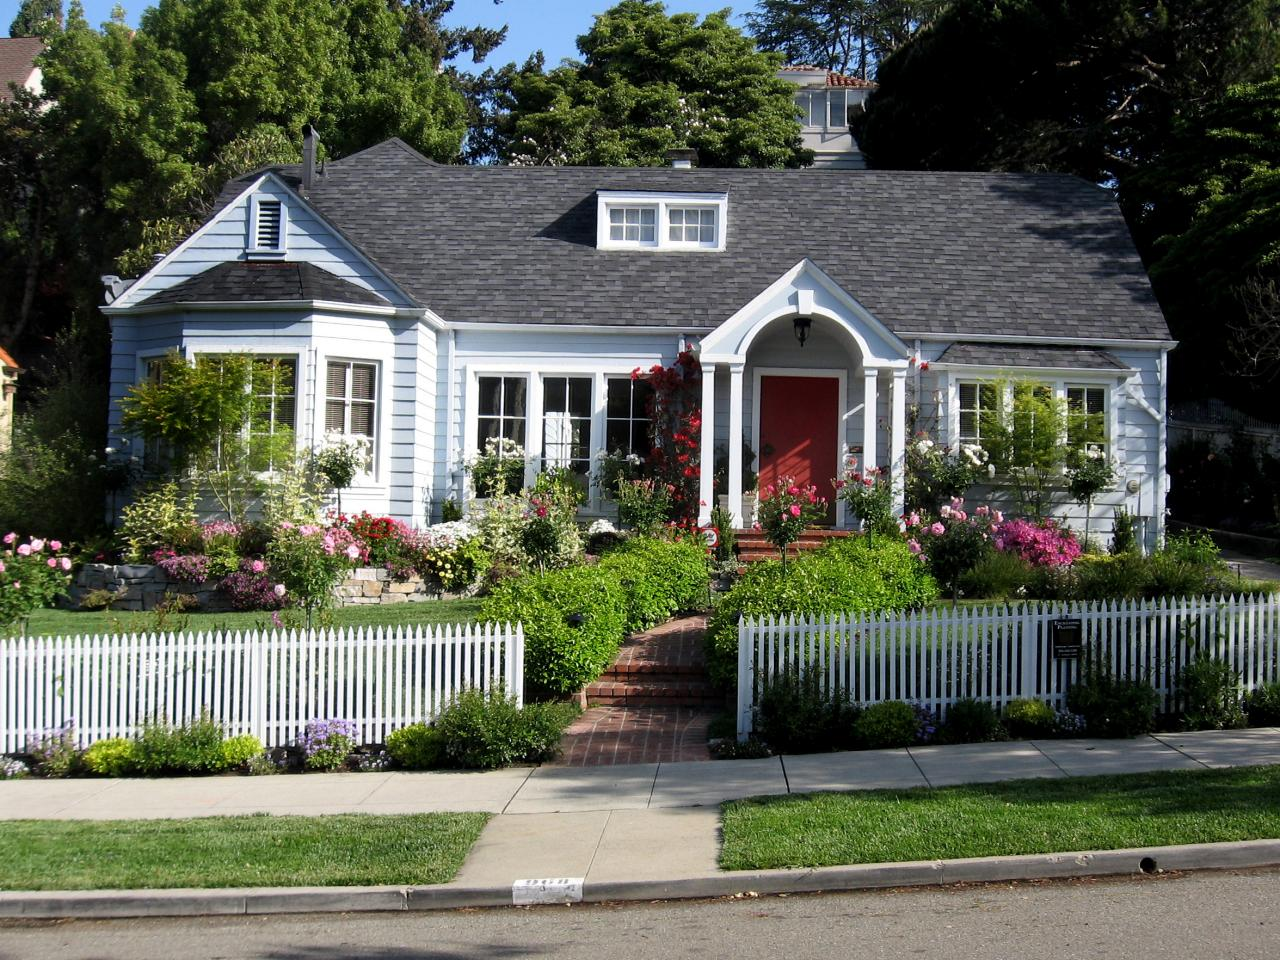 Landscaping tips that can help sell your home hgtv for Cottage style homes for sale